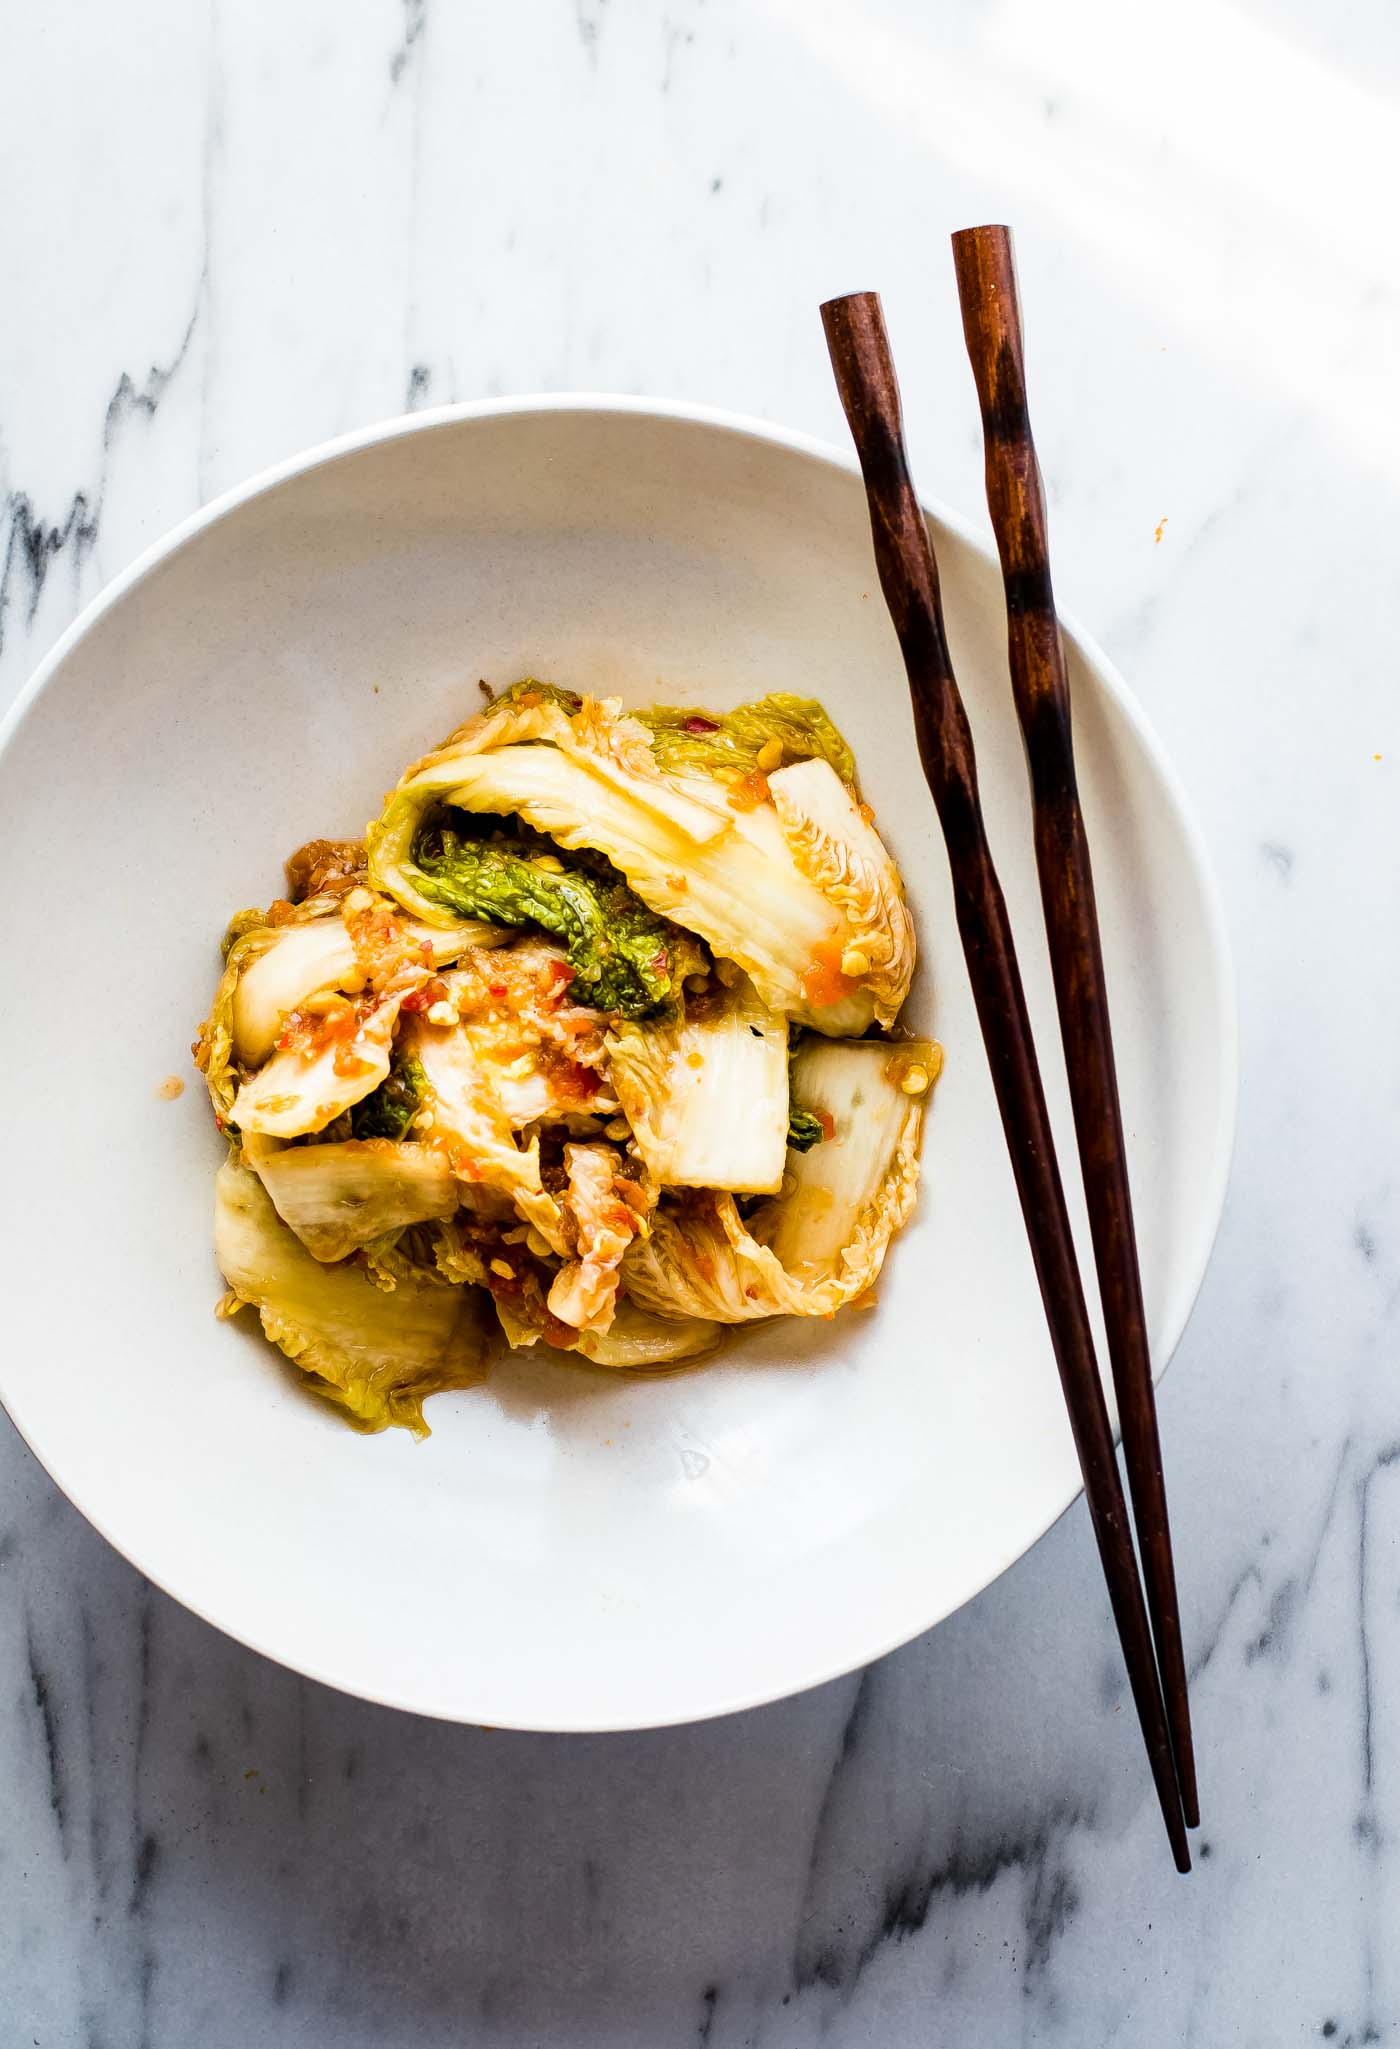 Asian Southwest Fusion EASY Kimchi Recipe. Aspicy, tangy, and oh soEasykimchi recipe! This paleoAsian Southwest Fusion style kimchitakes 10 minutes to make. The hardest part is waiting for it to ferment.. Yep, ahealthy side or topping to any dish. Vegan Friendly.